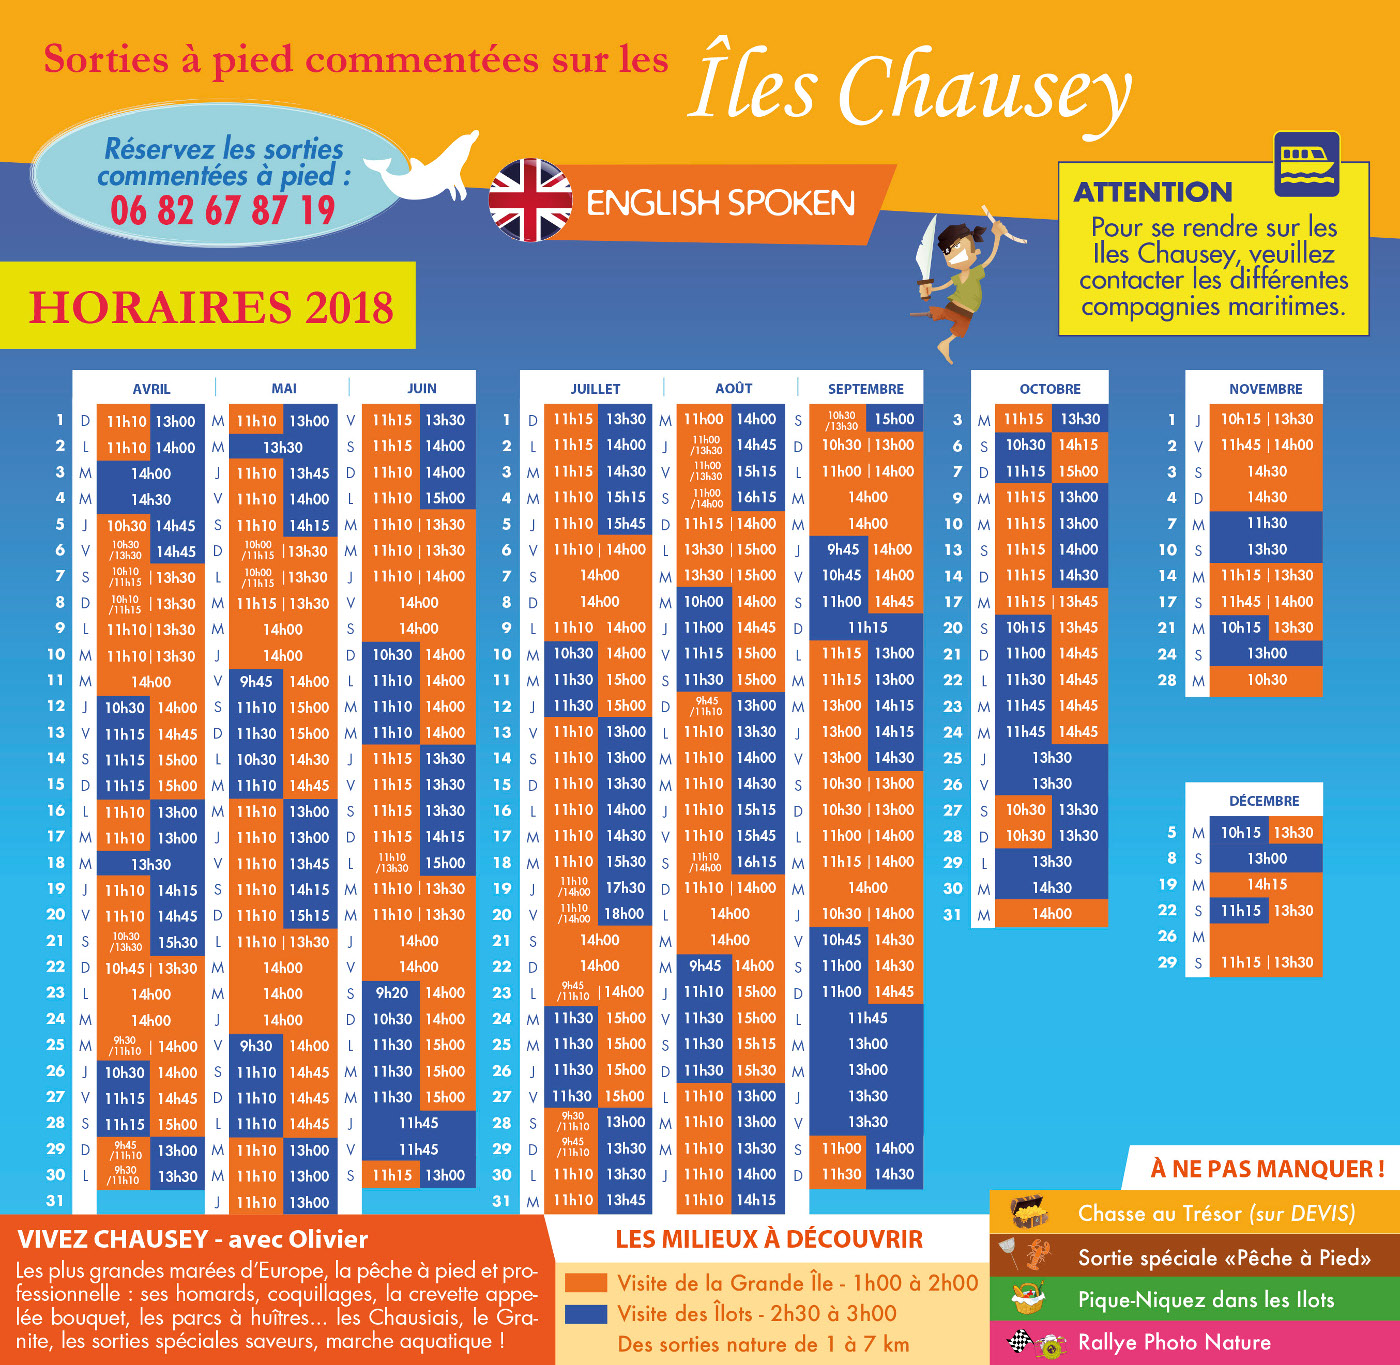 Chausey - Horaires 2018